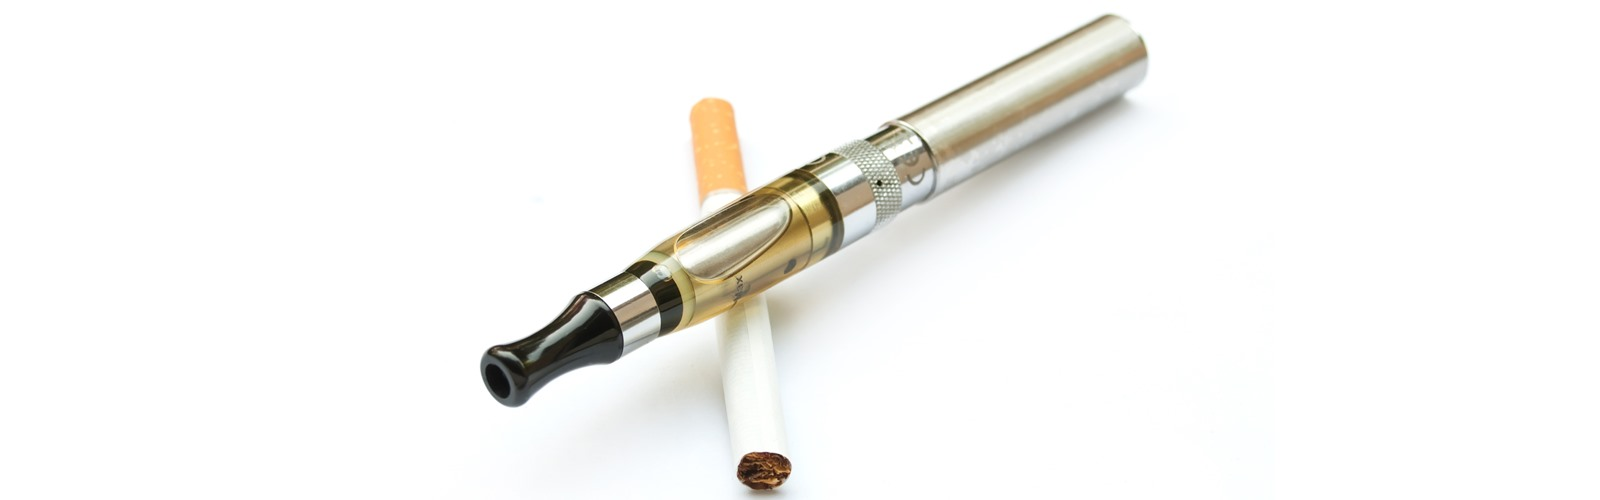 Cigarette and e-cigarette